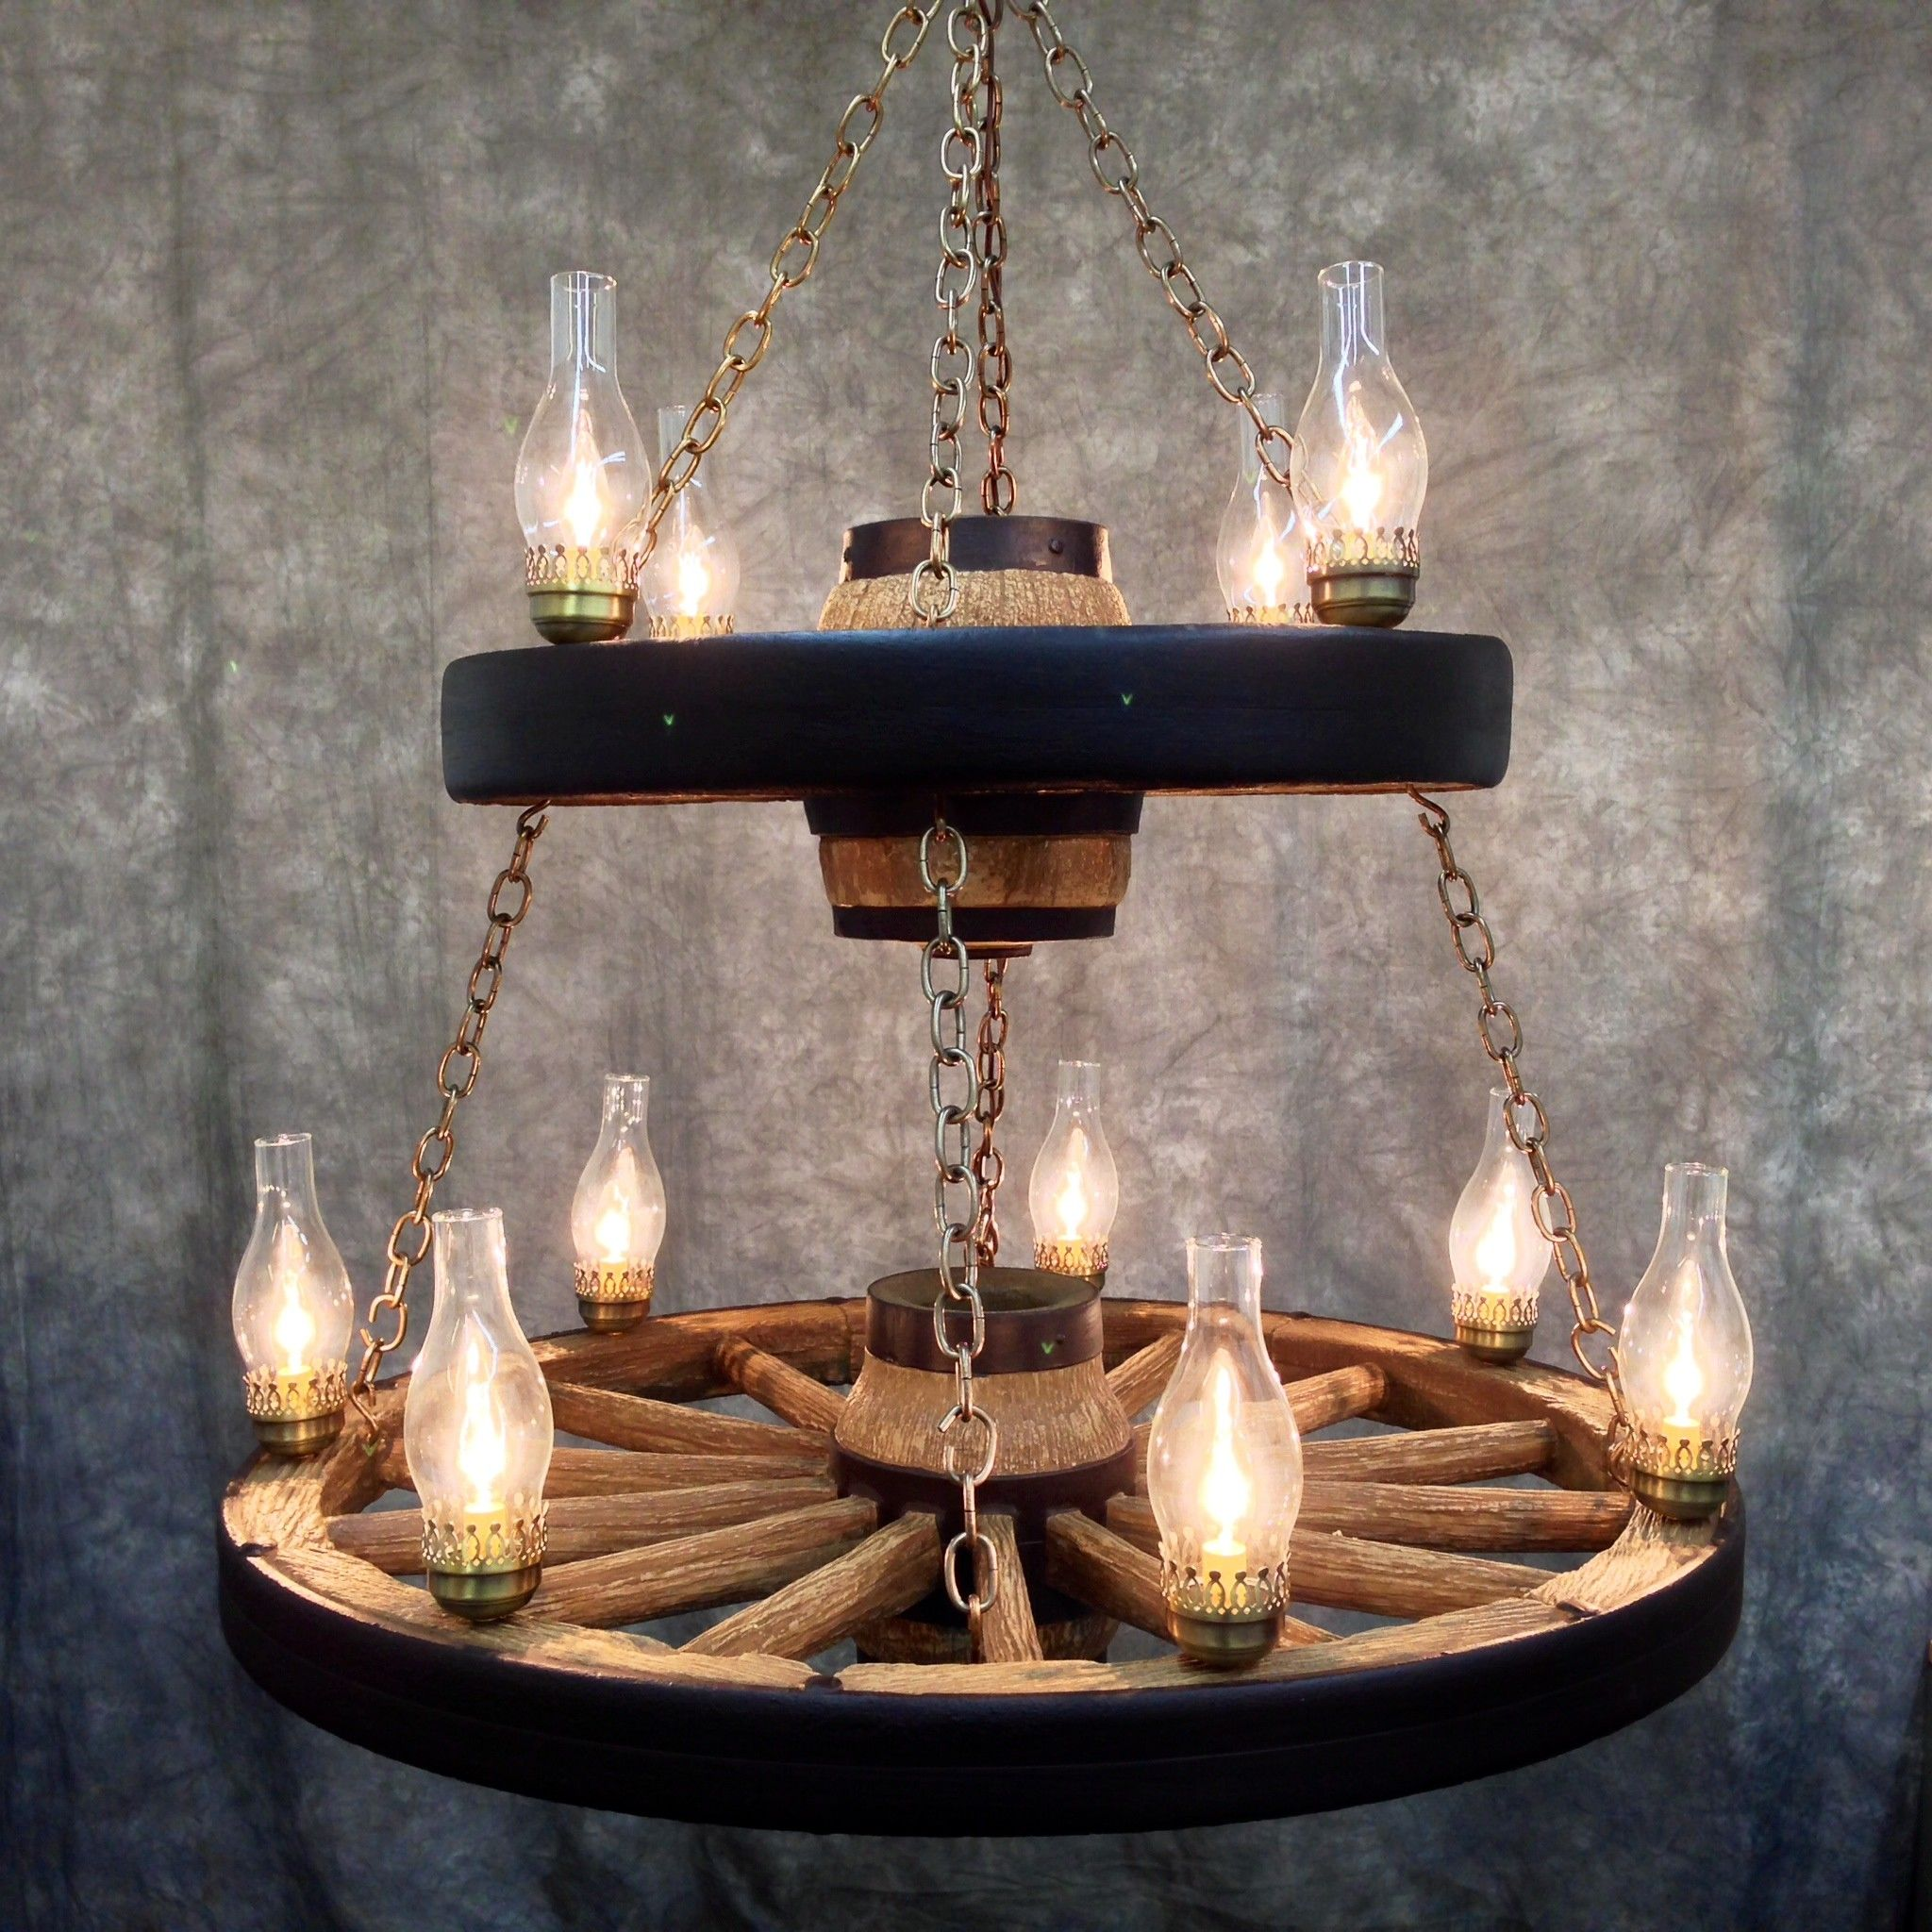 Wagon Wheel Chandelier Go to ChineseFurnitureShop for even